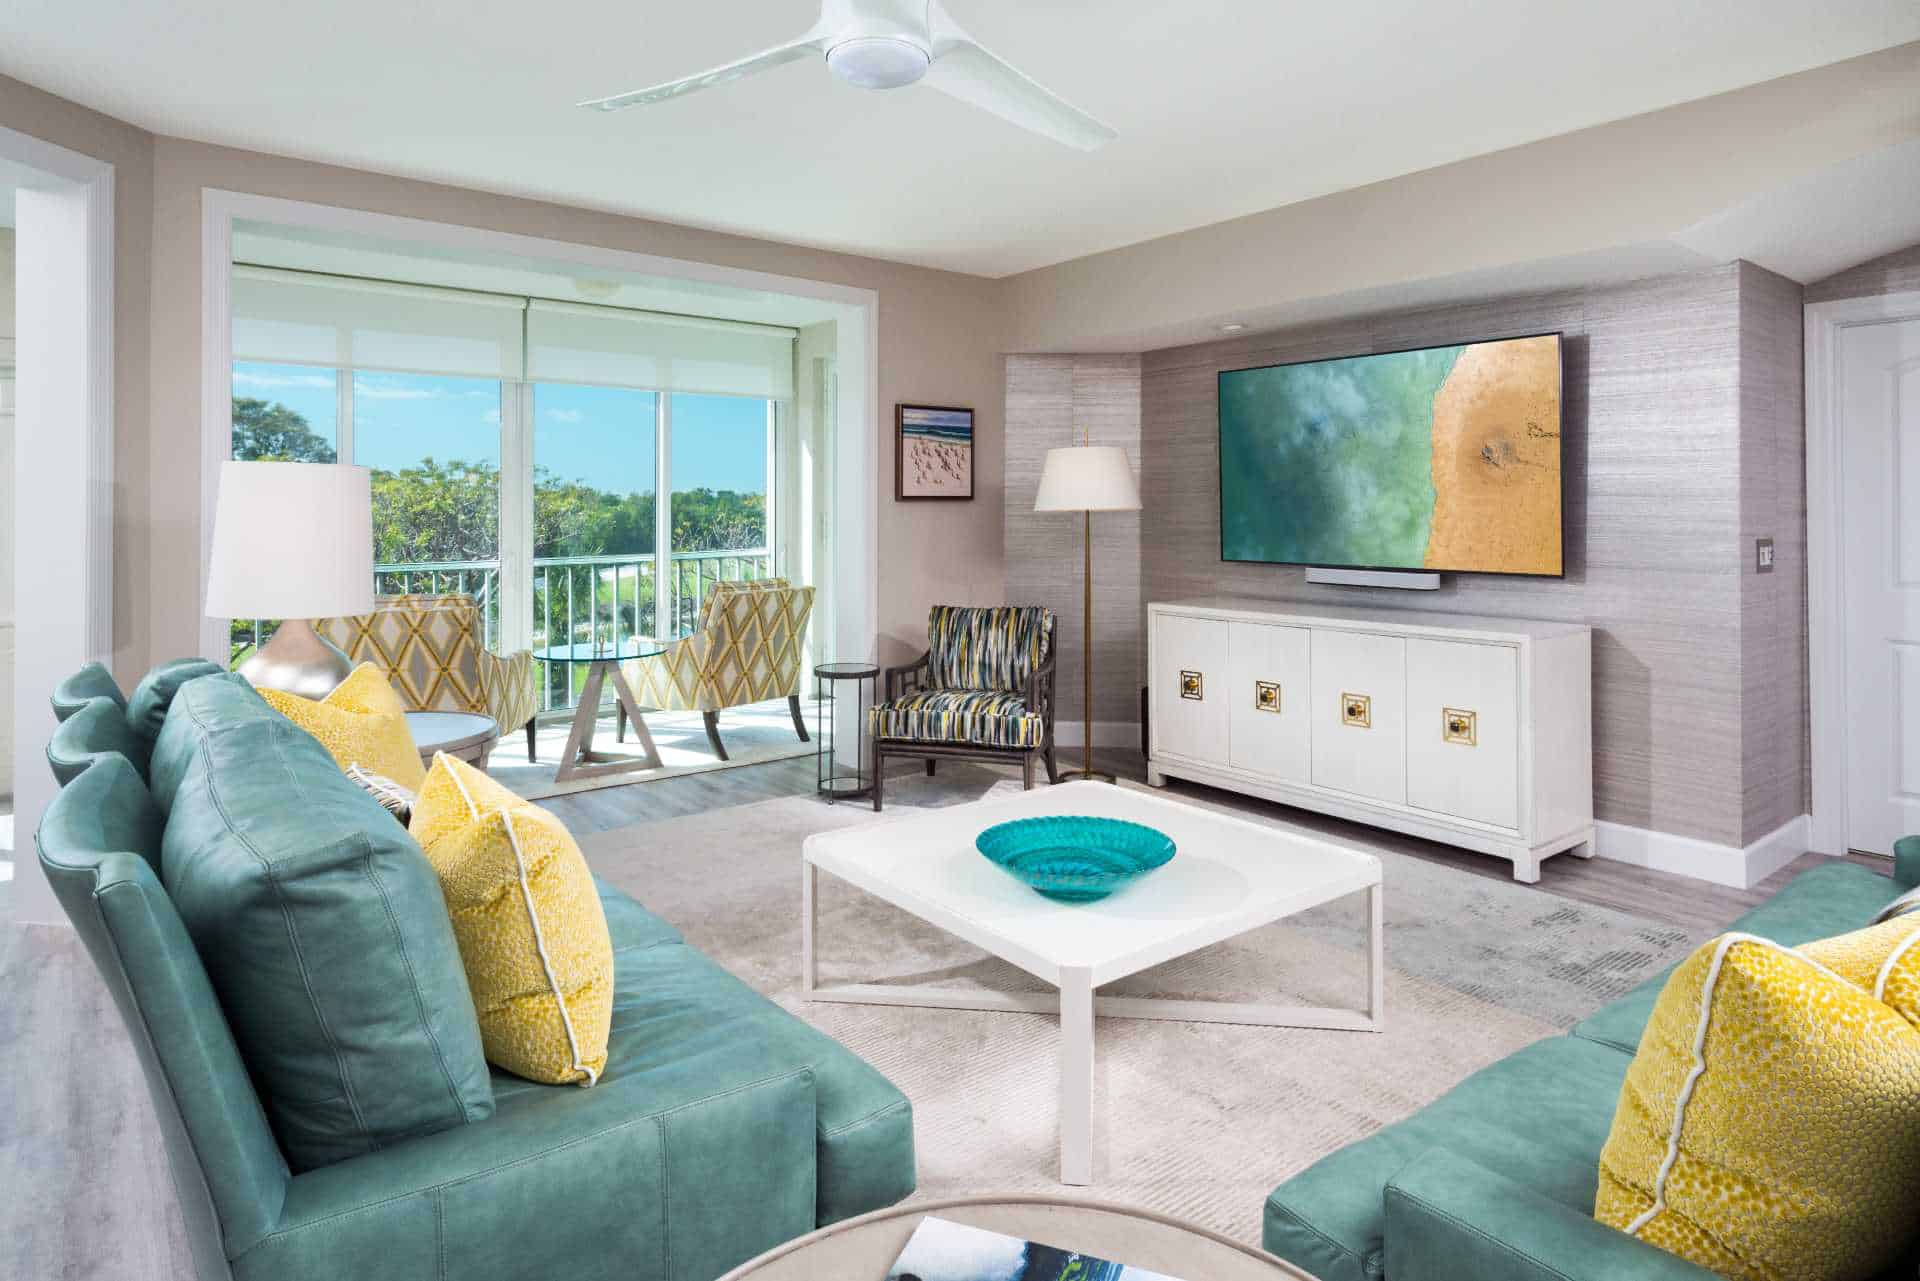 Furnished living room with amenities and television